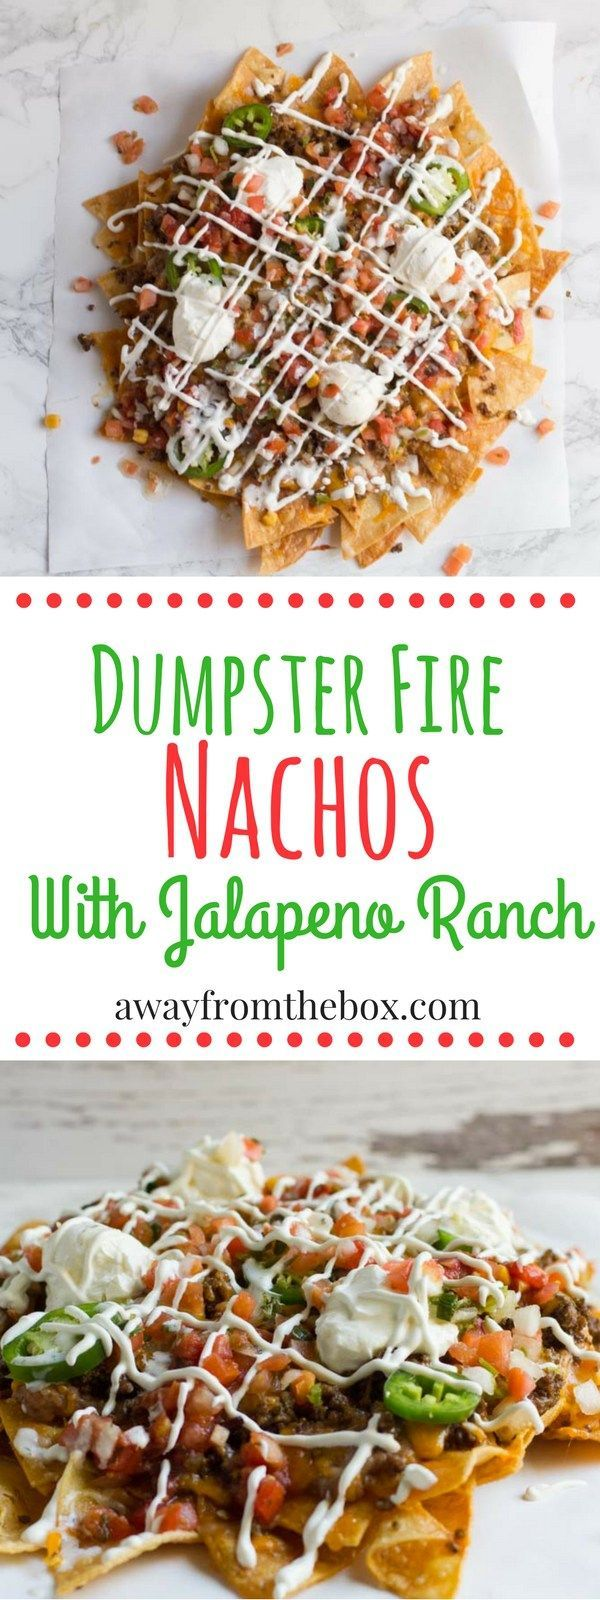 Dumpster fire nachos the perfect party food for any gathering the perfect party food for any gathering piled high with all kinds of junk including fiery jalapeno ranch forumfinder Choice Image